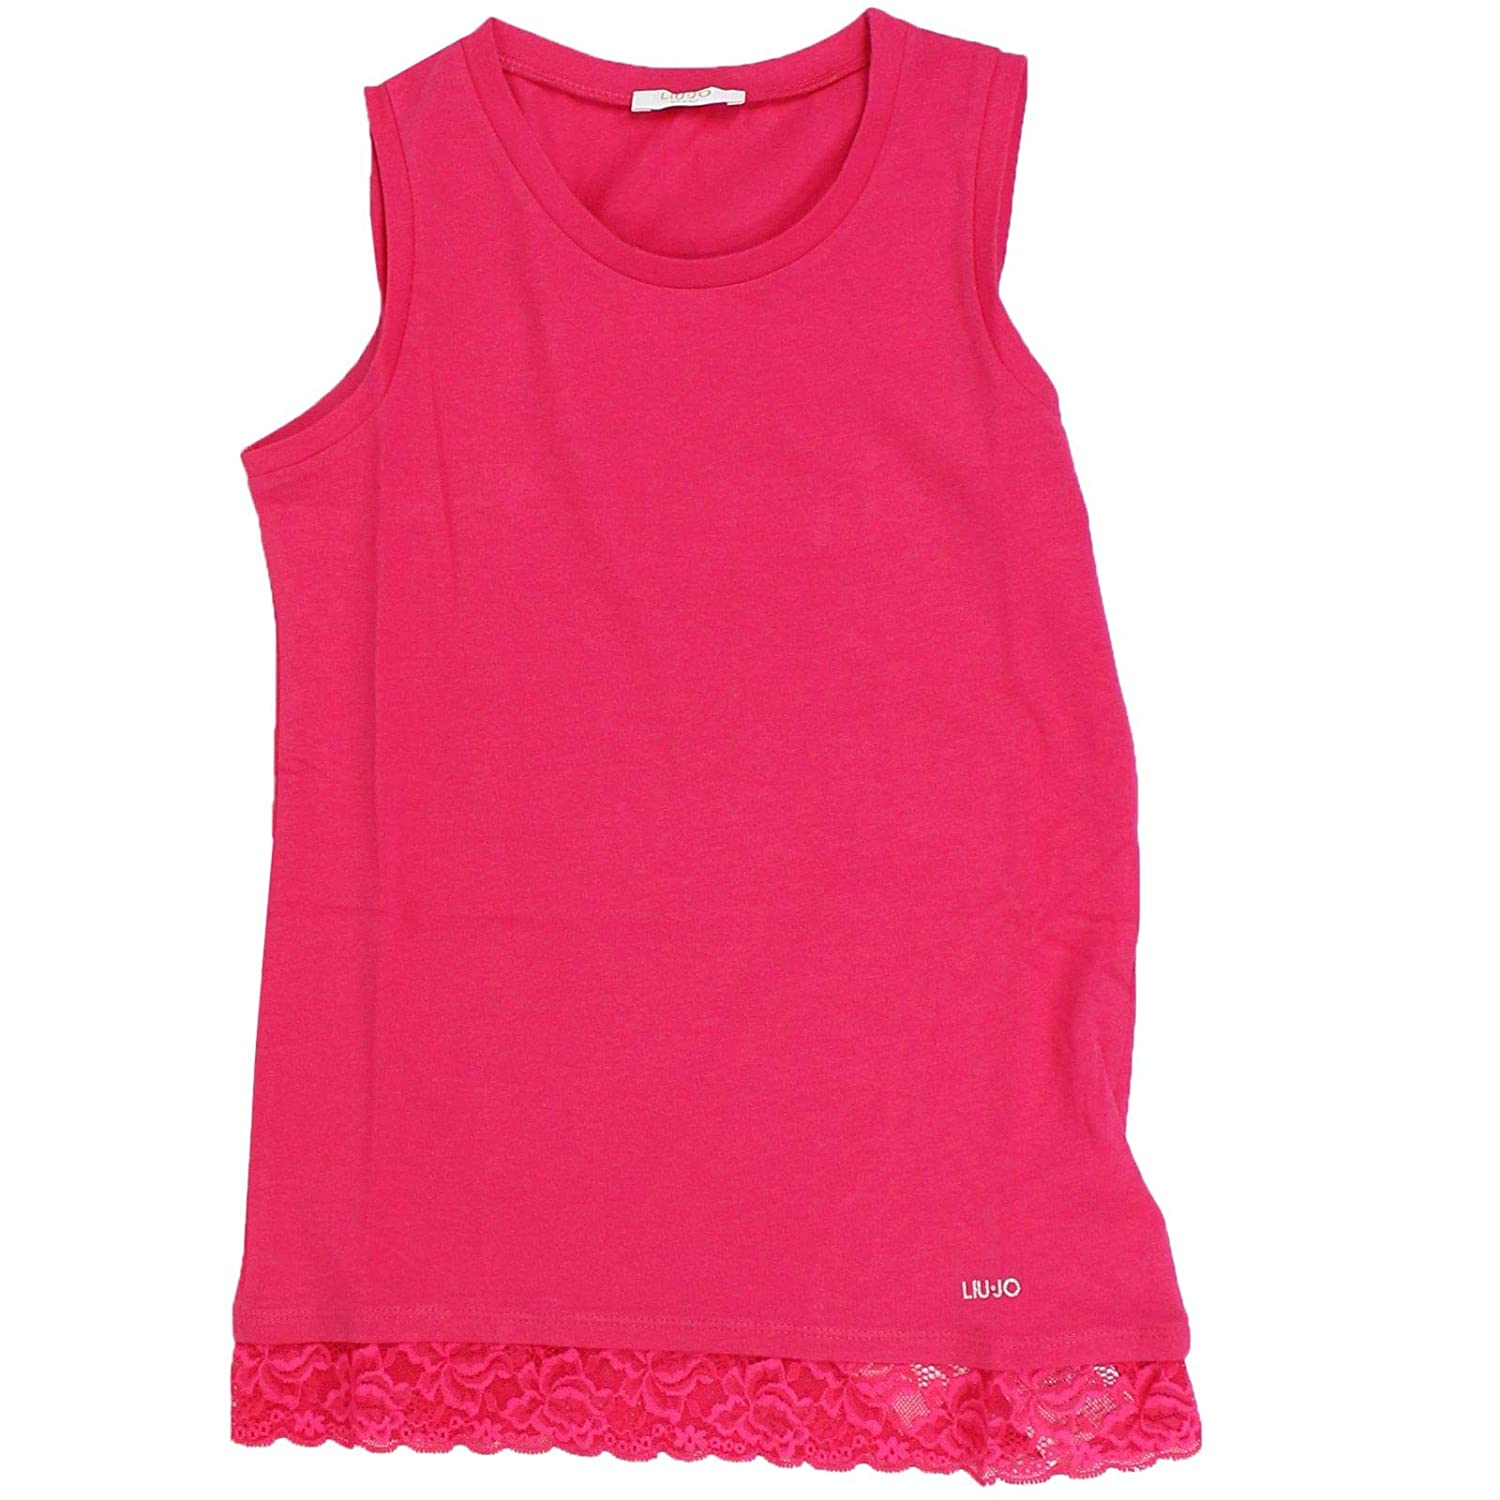 Taille Fabricant 16yrs Liu Jo Fille G19013J500381945 Rouge Coton Tank Top